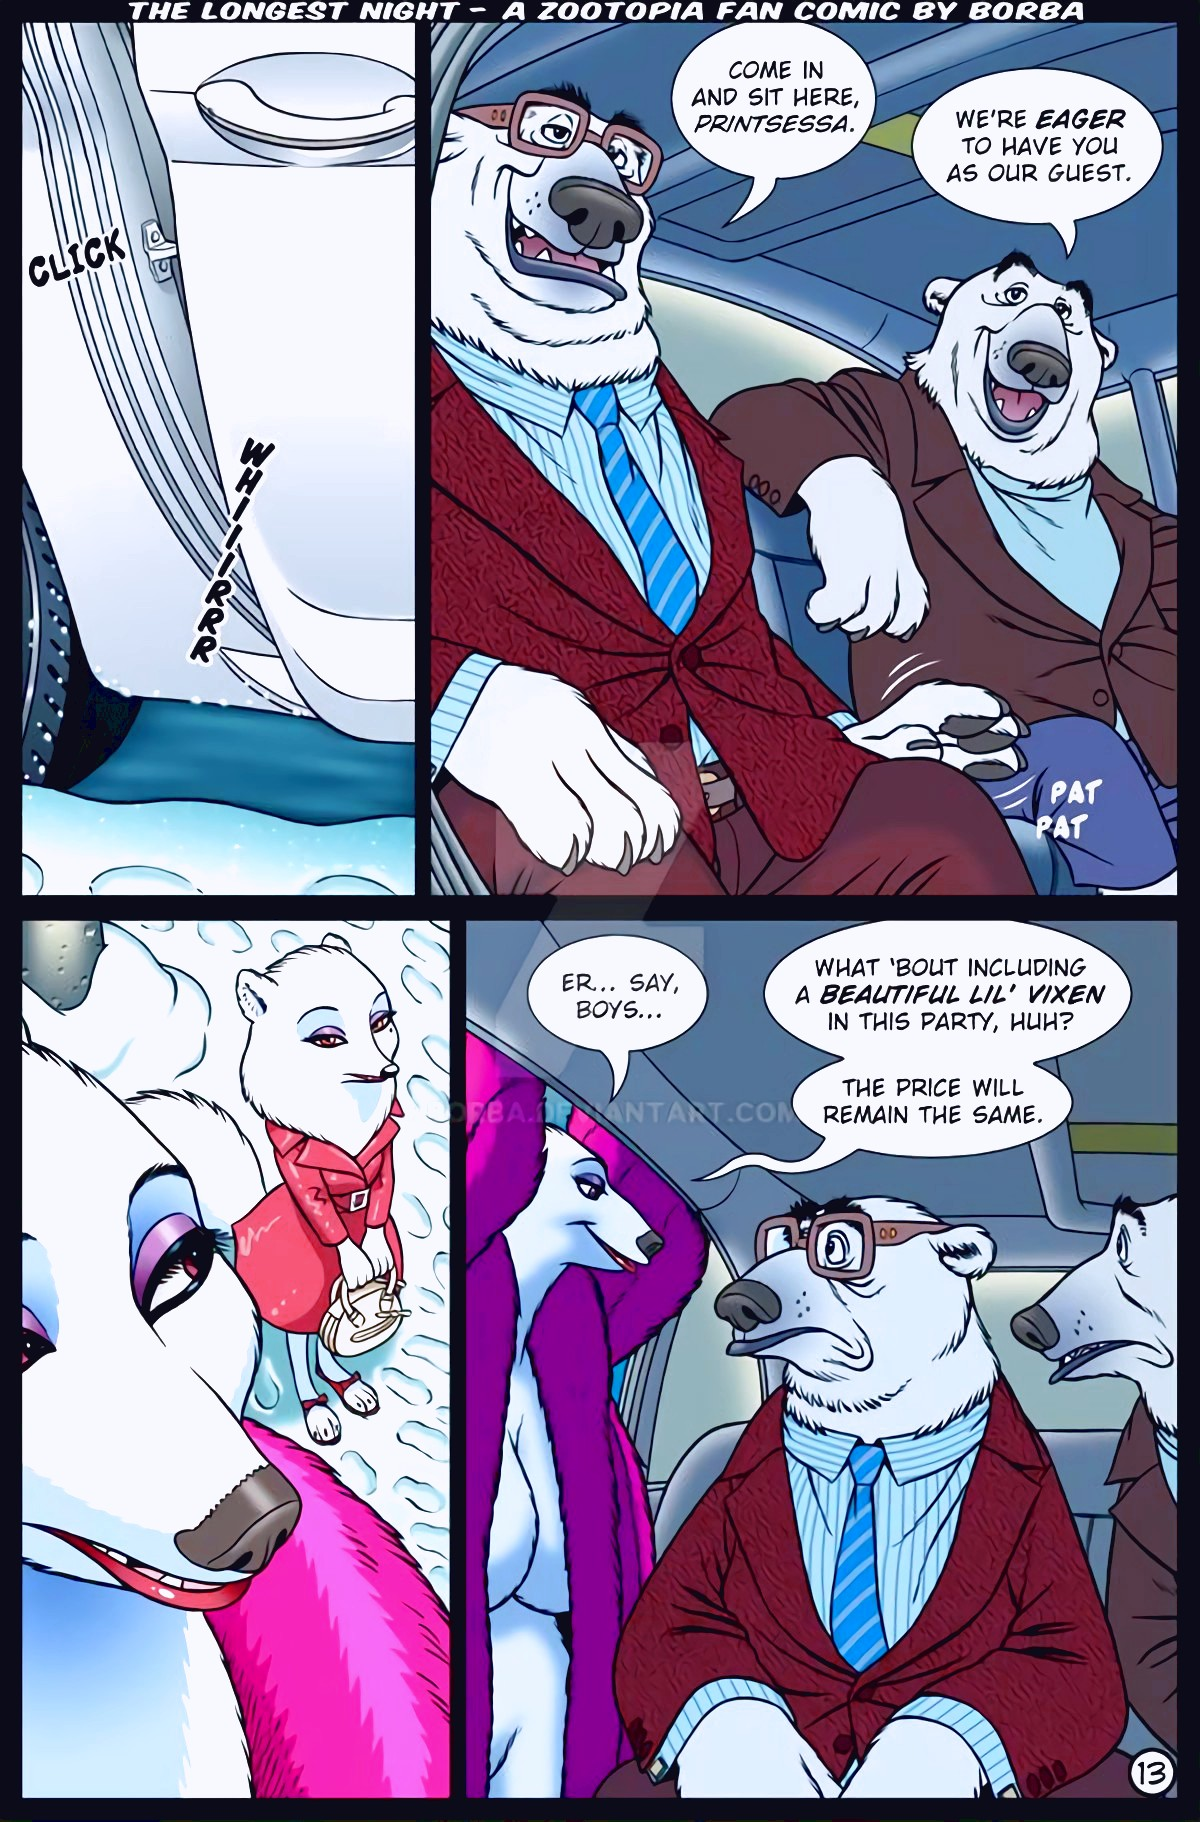 The Longest Night page 13